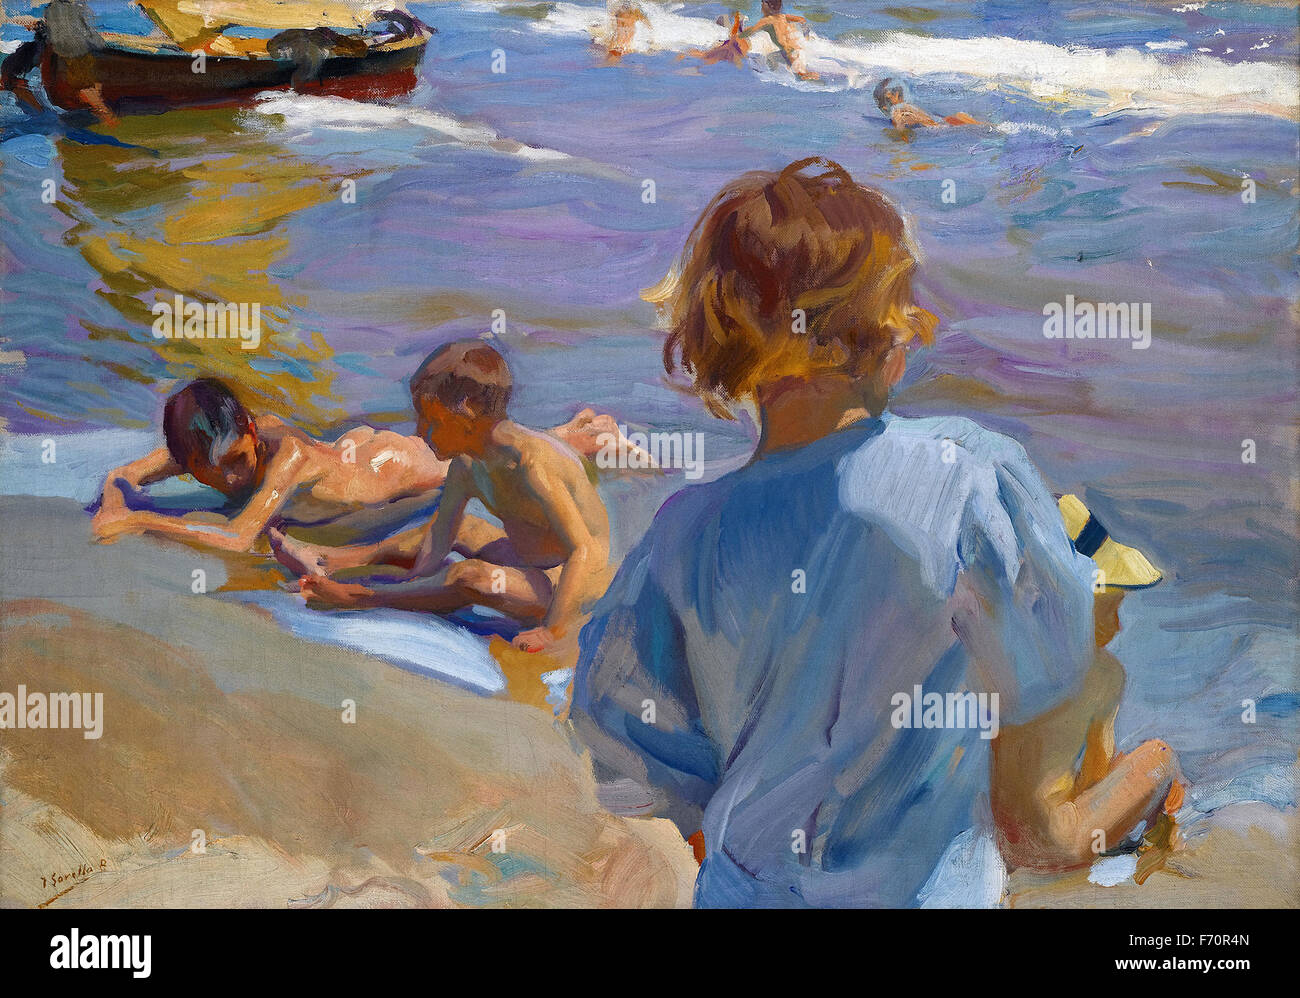 Joaquín Sorolla y Bastida - Children on the Beach, Valencia - Stock Image